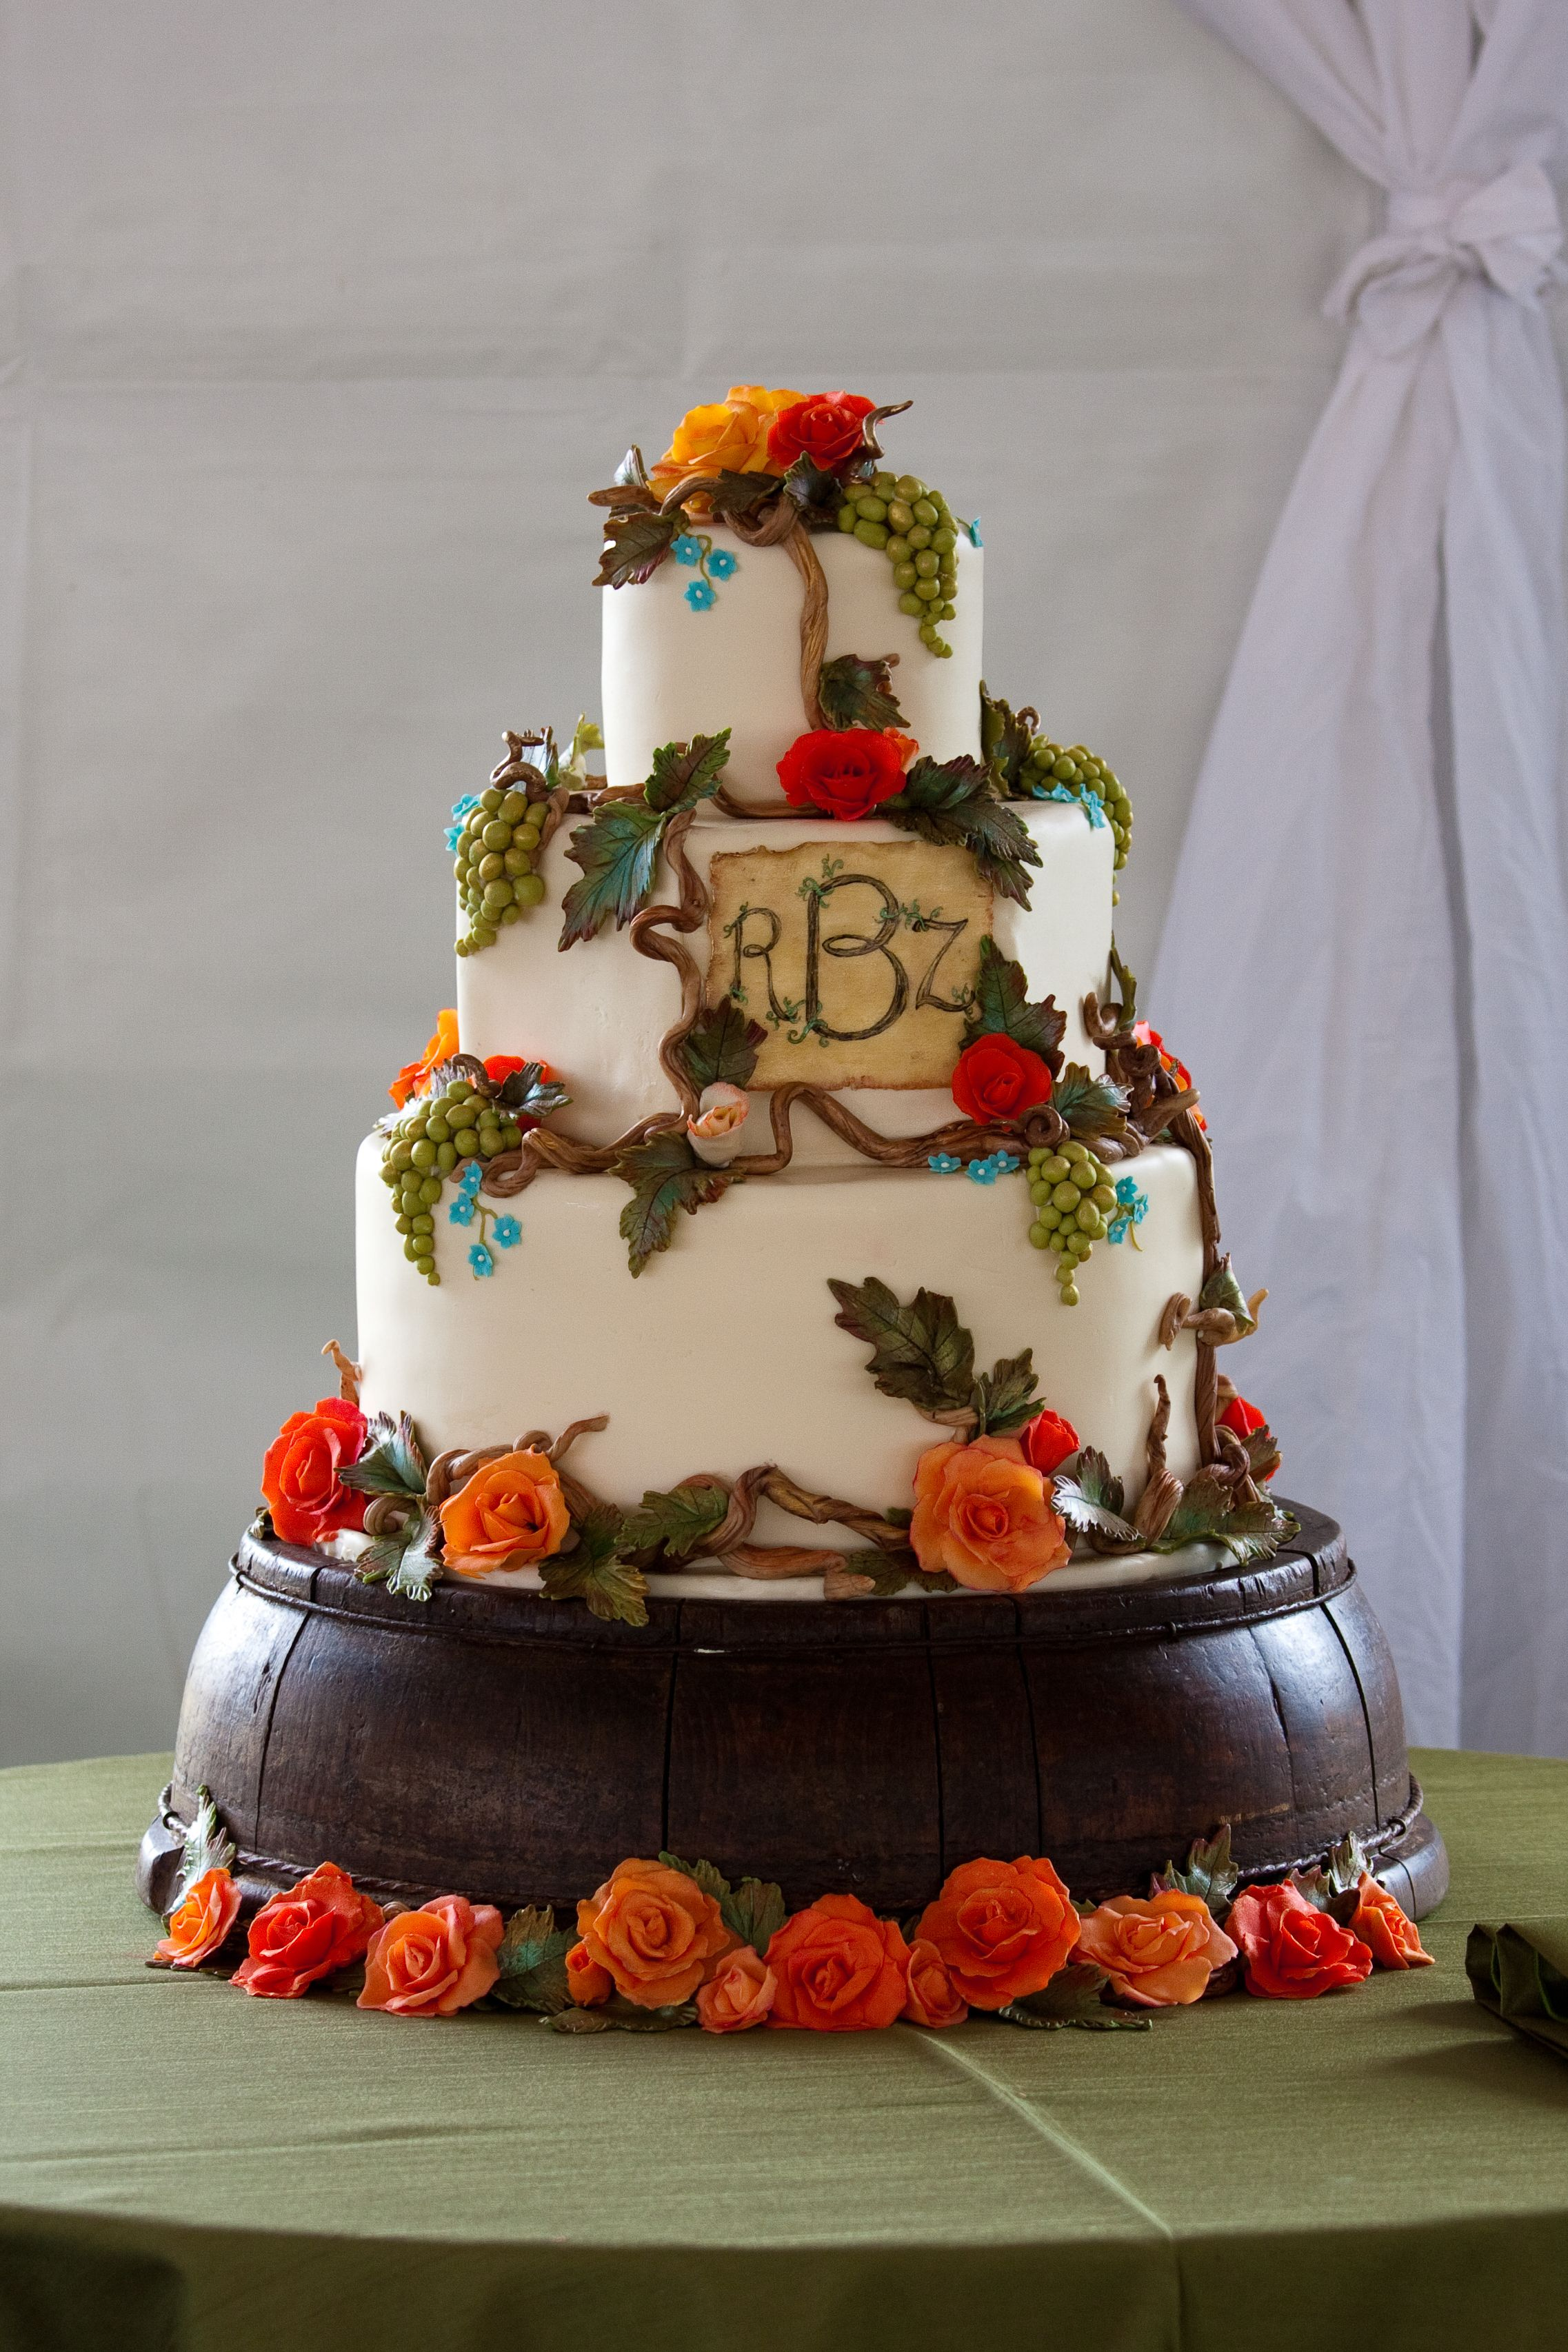 This cake was made with a wine label in mind, all accents including grapes, leaves, flowers, and wine label were created from imported chocolate. Cake: Elegant Cheesecakes, Half Moon Bay, CA